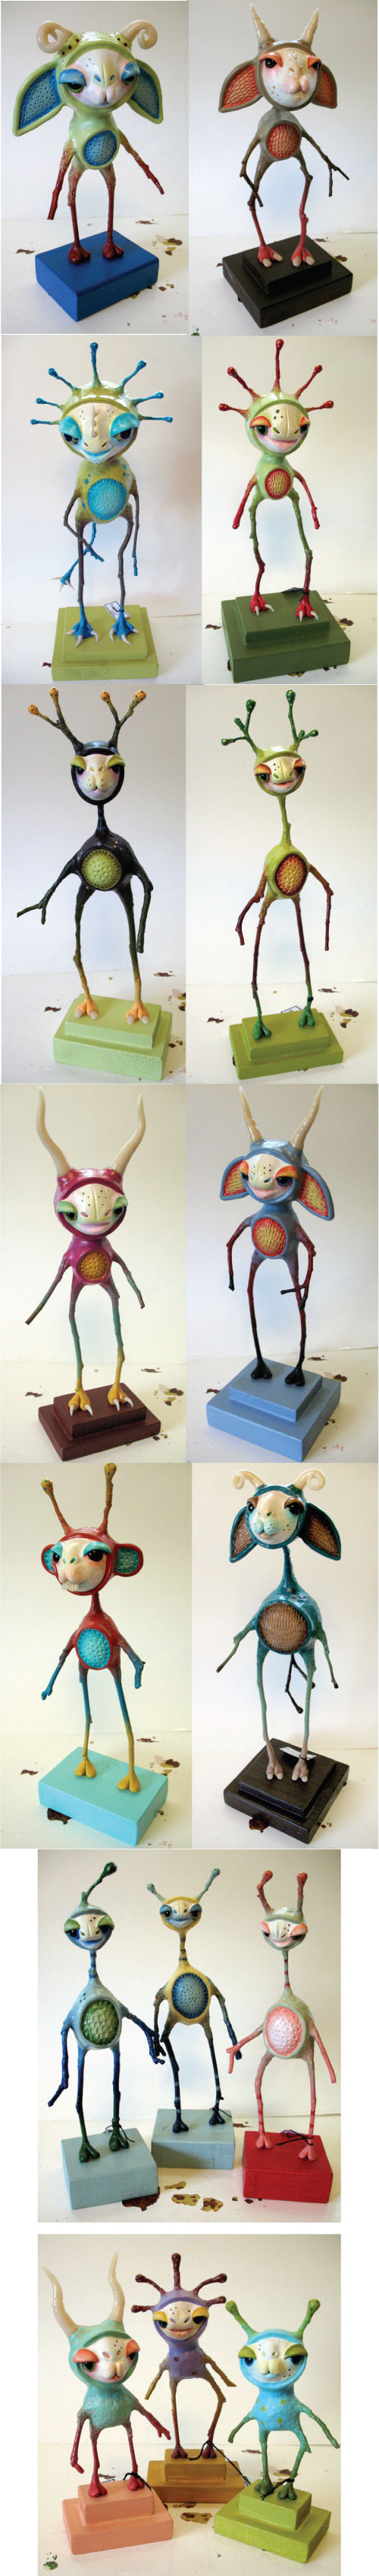 2-legged_sculptures